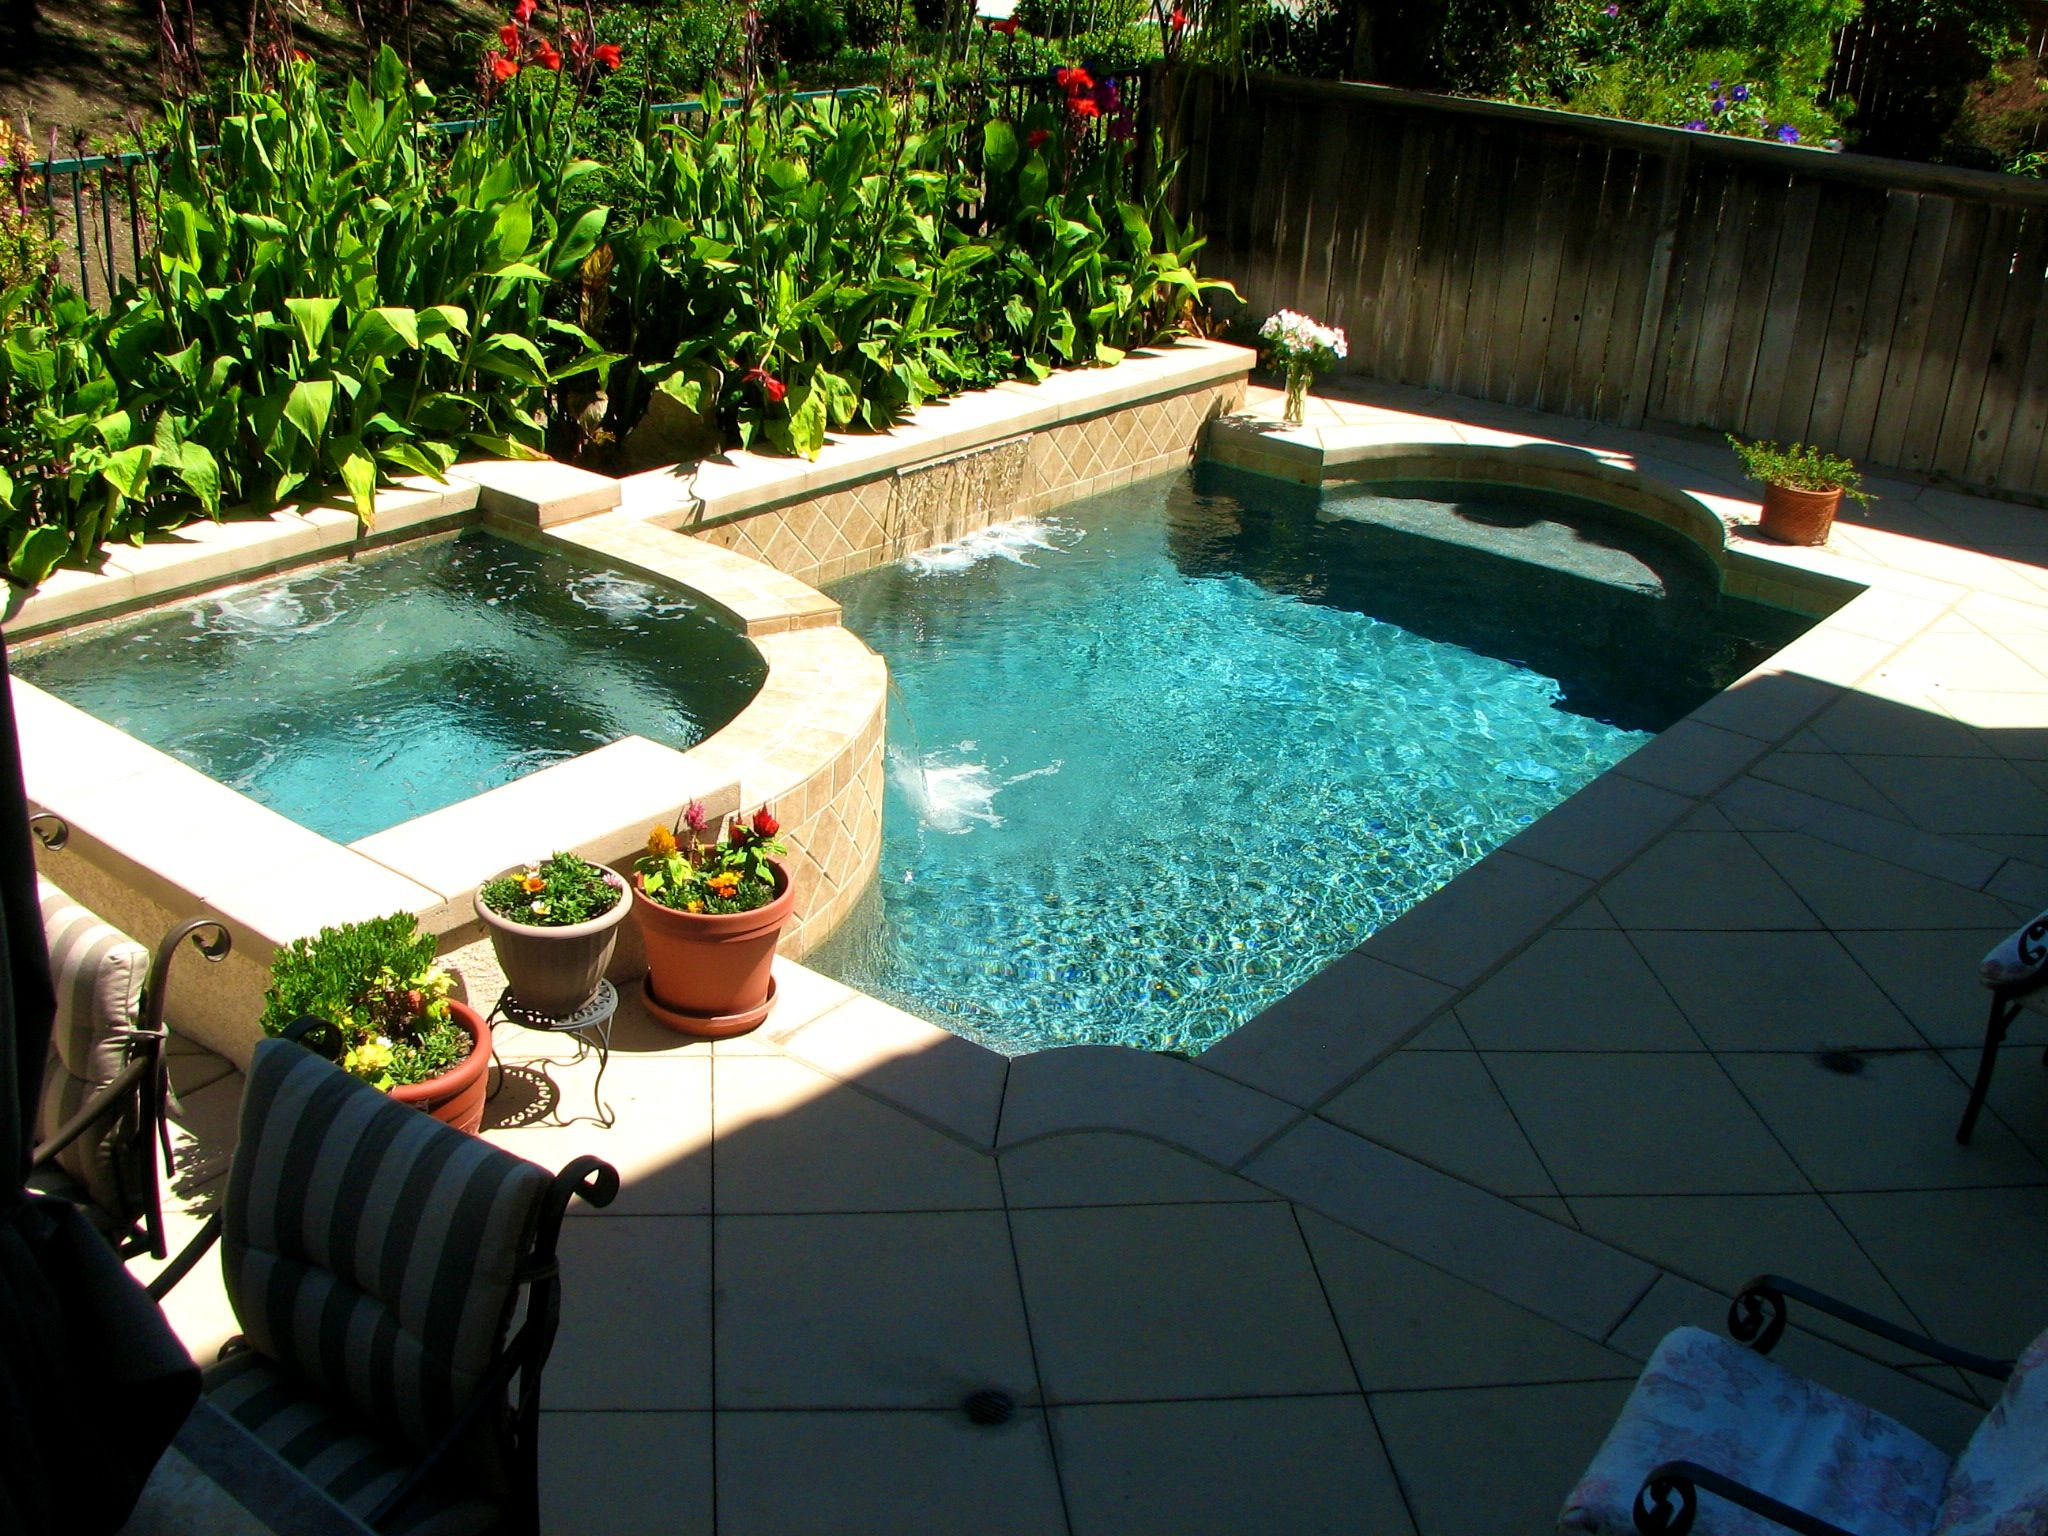 Creative Pools For Small Spaces 15 Small Pool Design Swimming